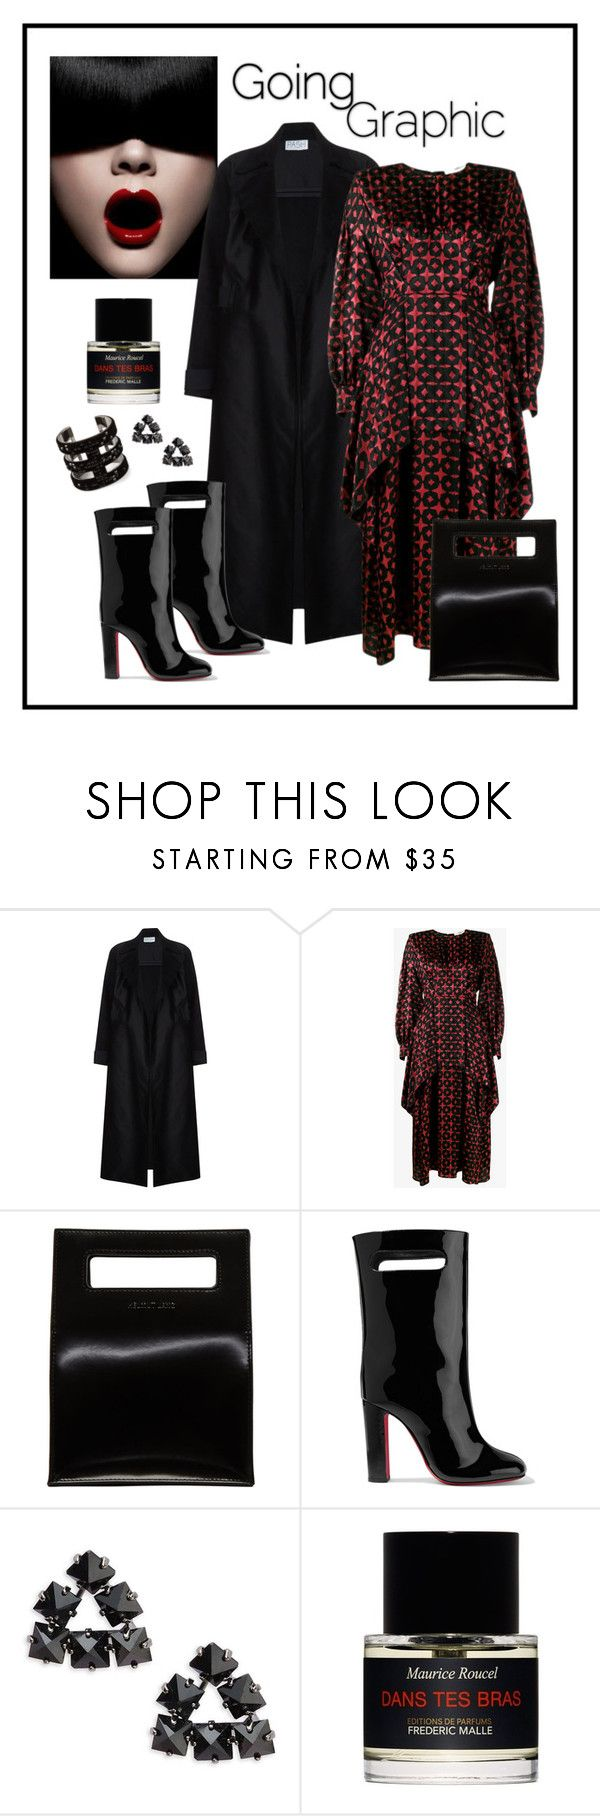 """""""Fendi Black & Red Printed Silk Dress Look"""" by romaboots-1 ❤ liked on Polyvore featuring Fendi, Helmut Lang, Christian Louboutin, ABS by Allen Schwartz and Frédéric Malle"""